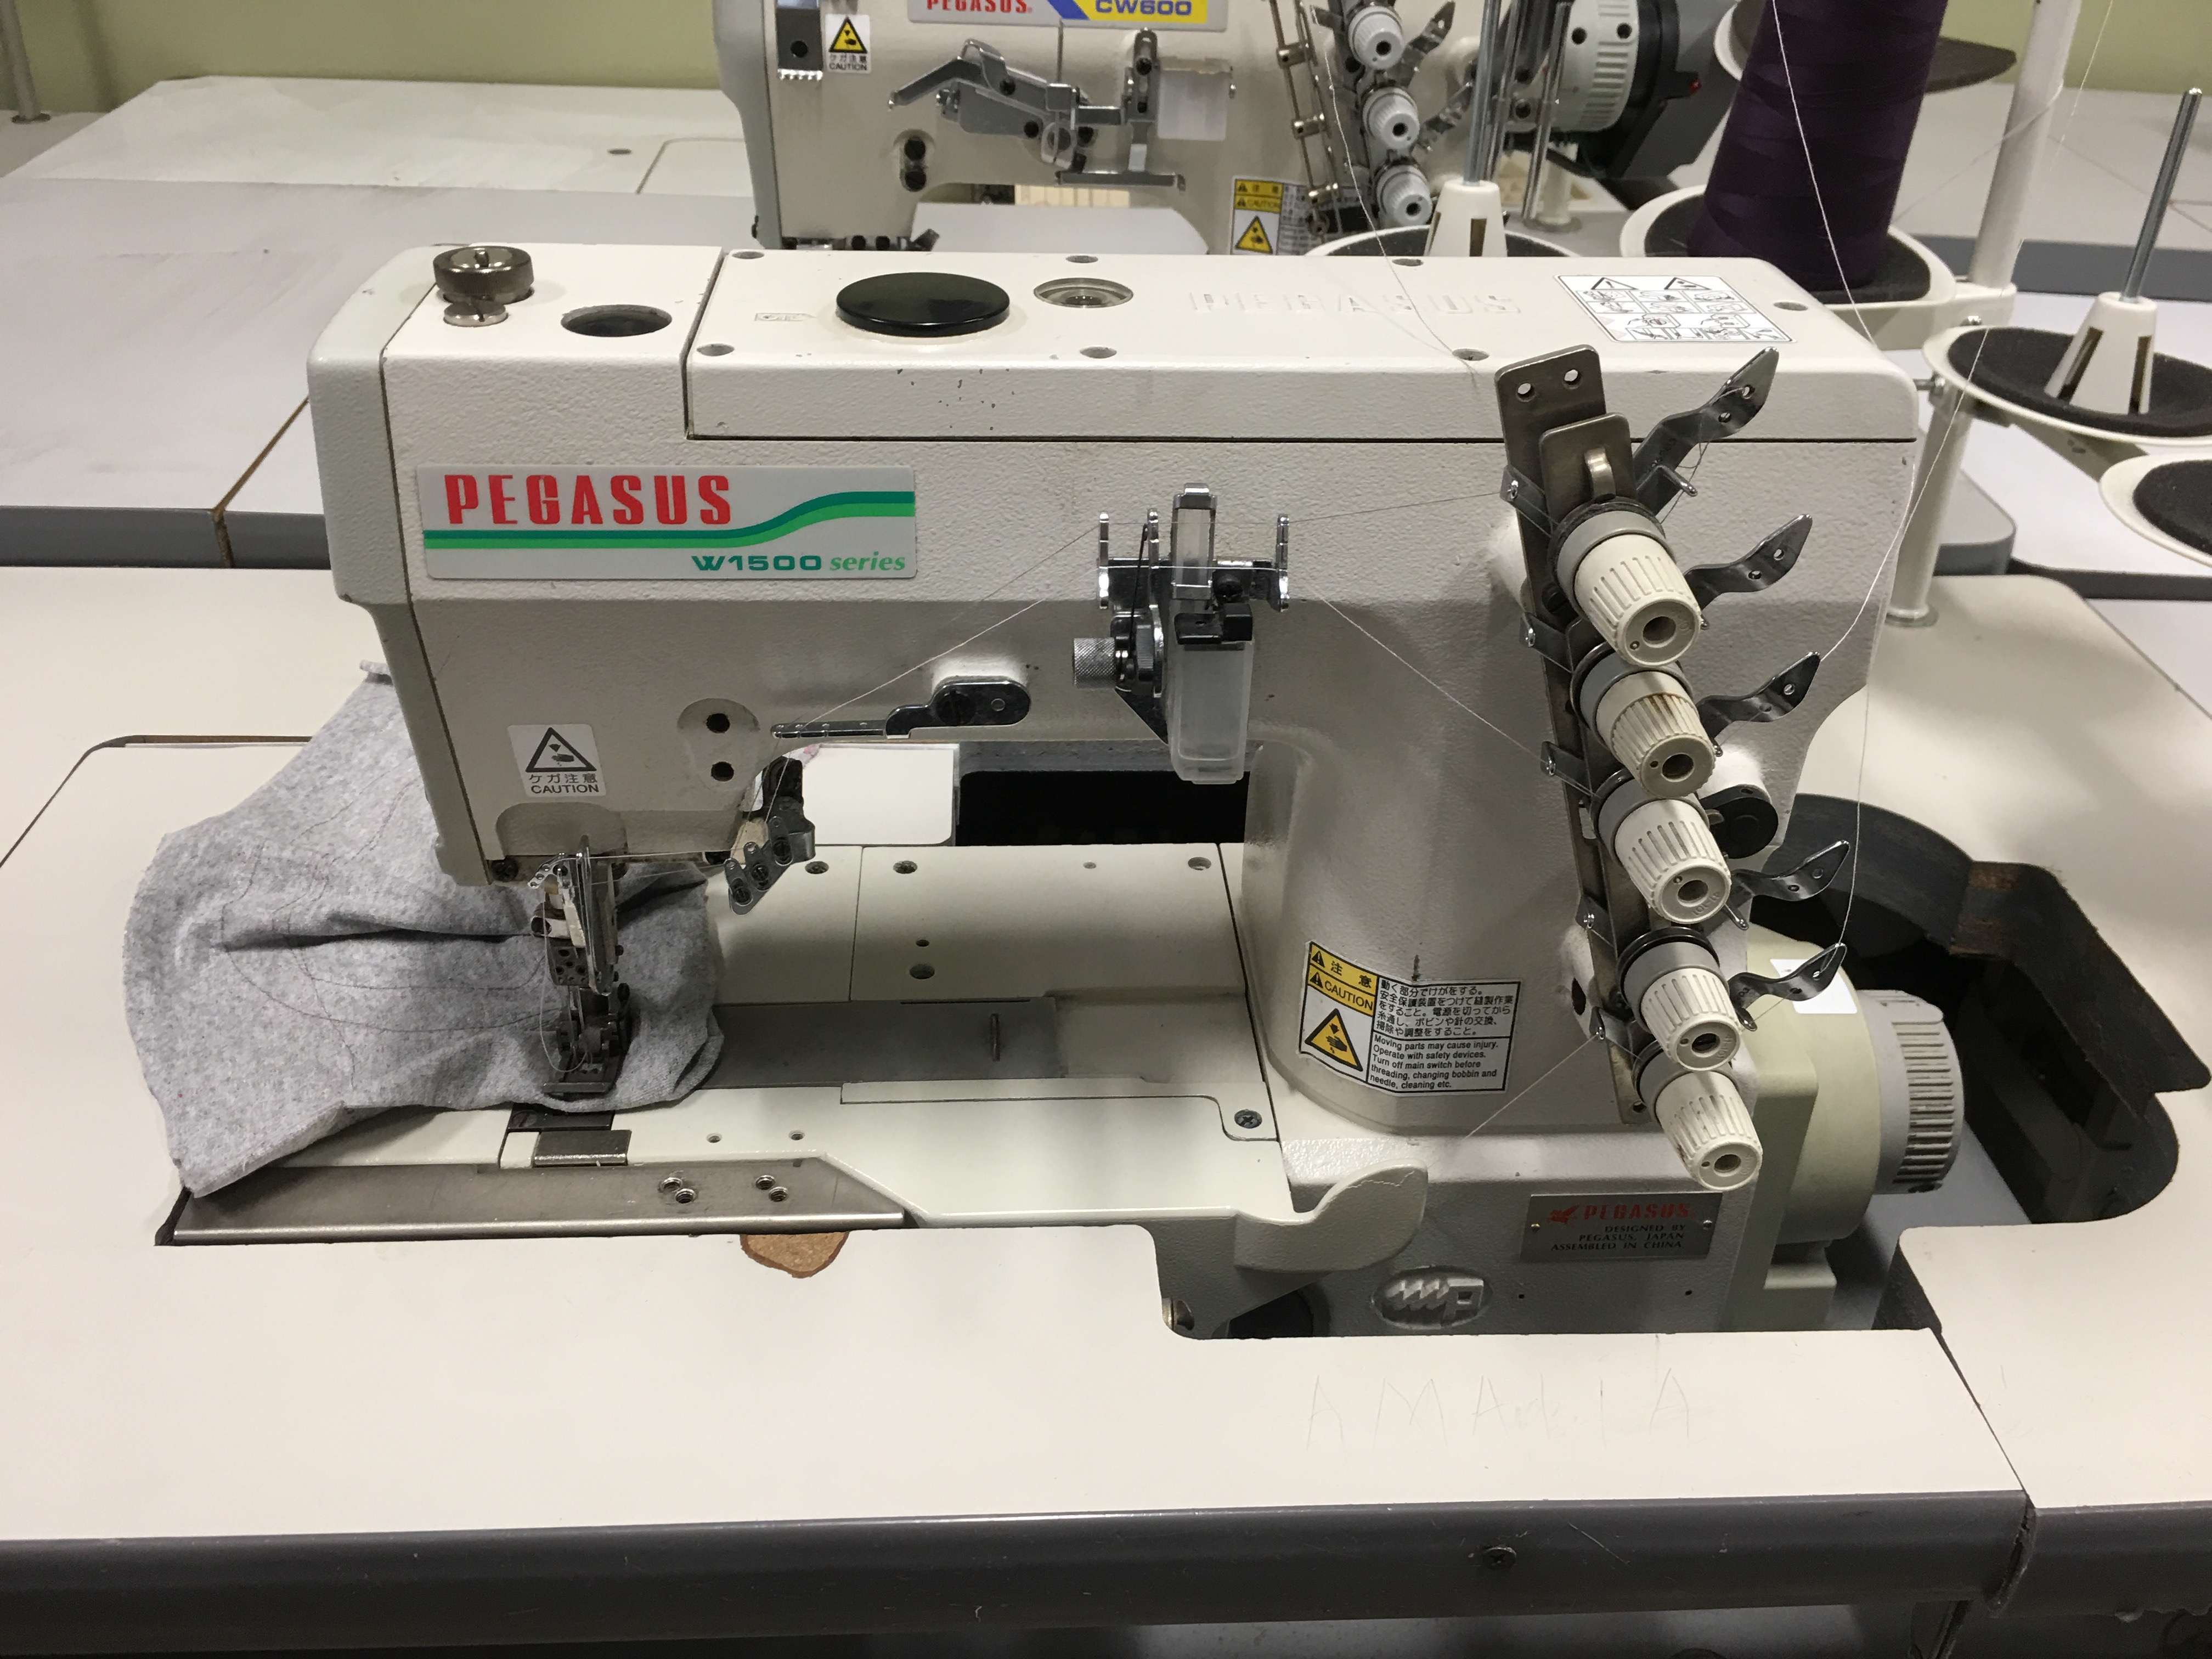 PEGASUS W1500 Series COVERSTITCH SEWING MACHINE - COMMERCIAL